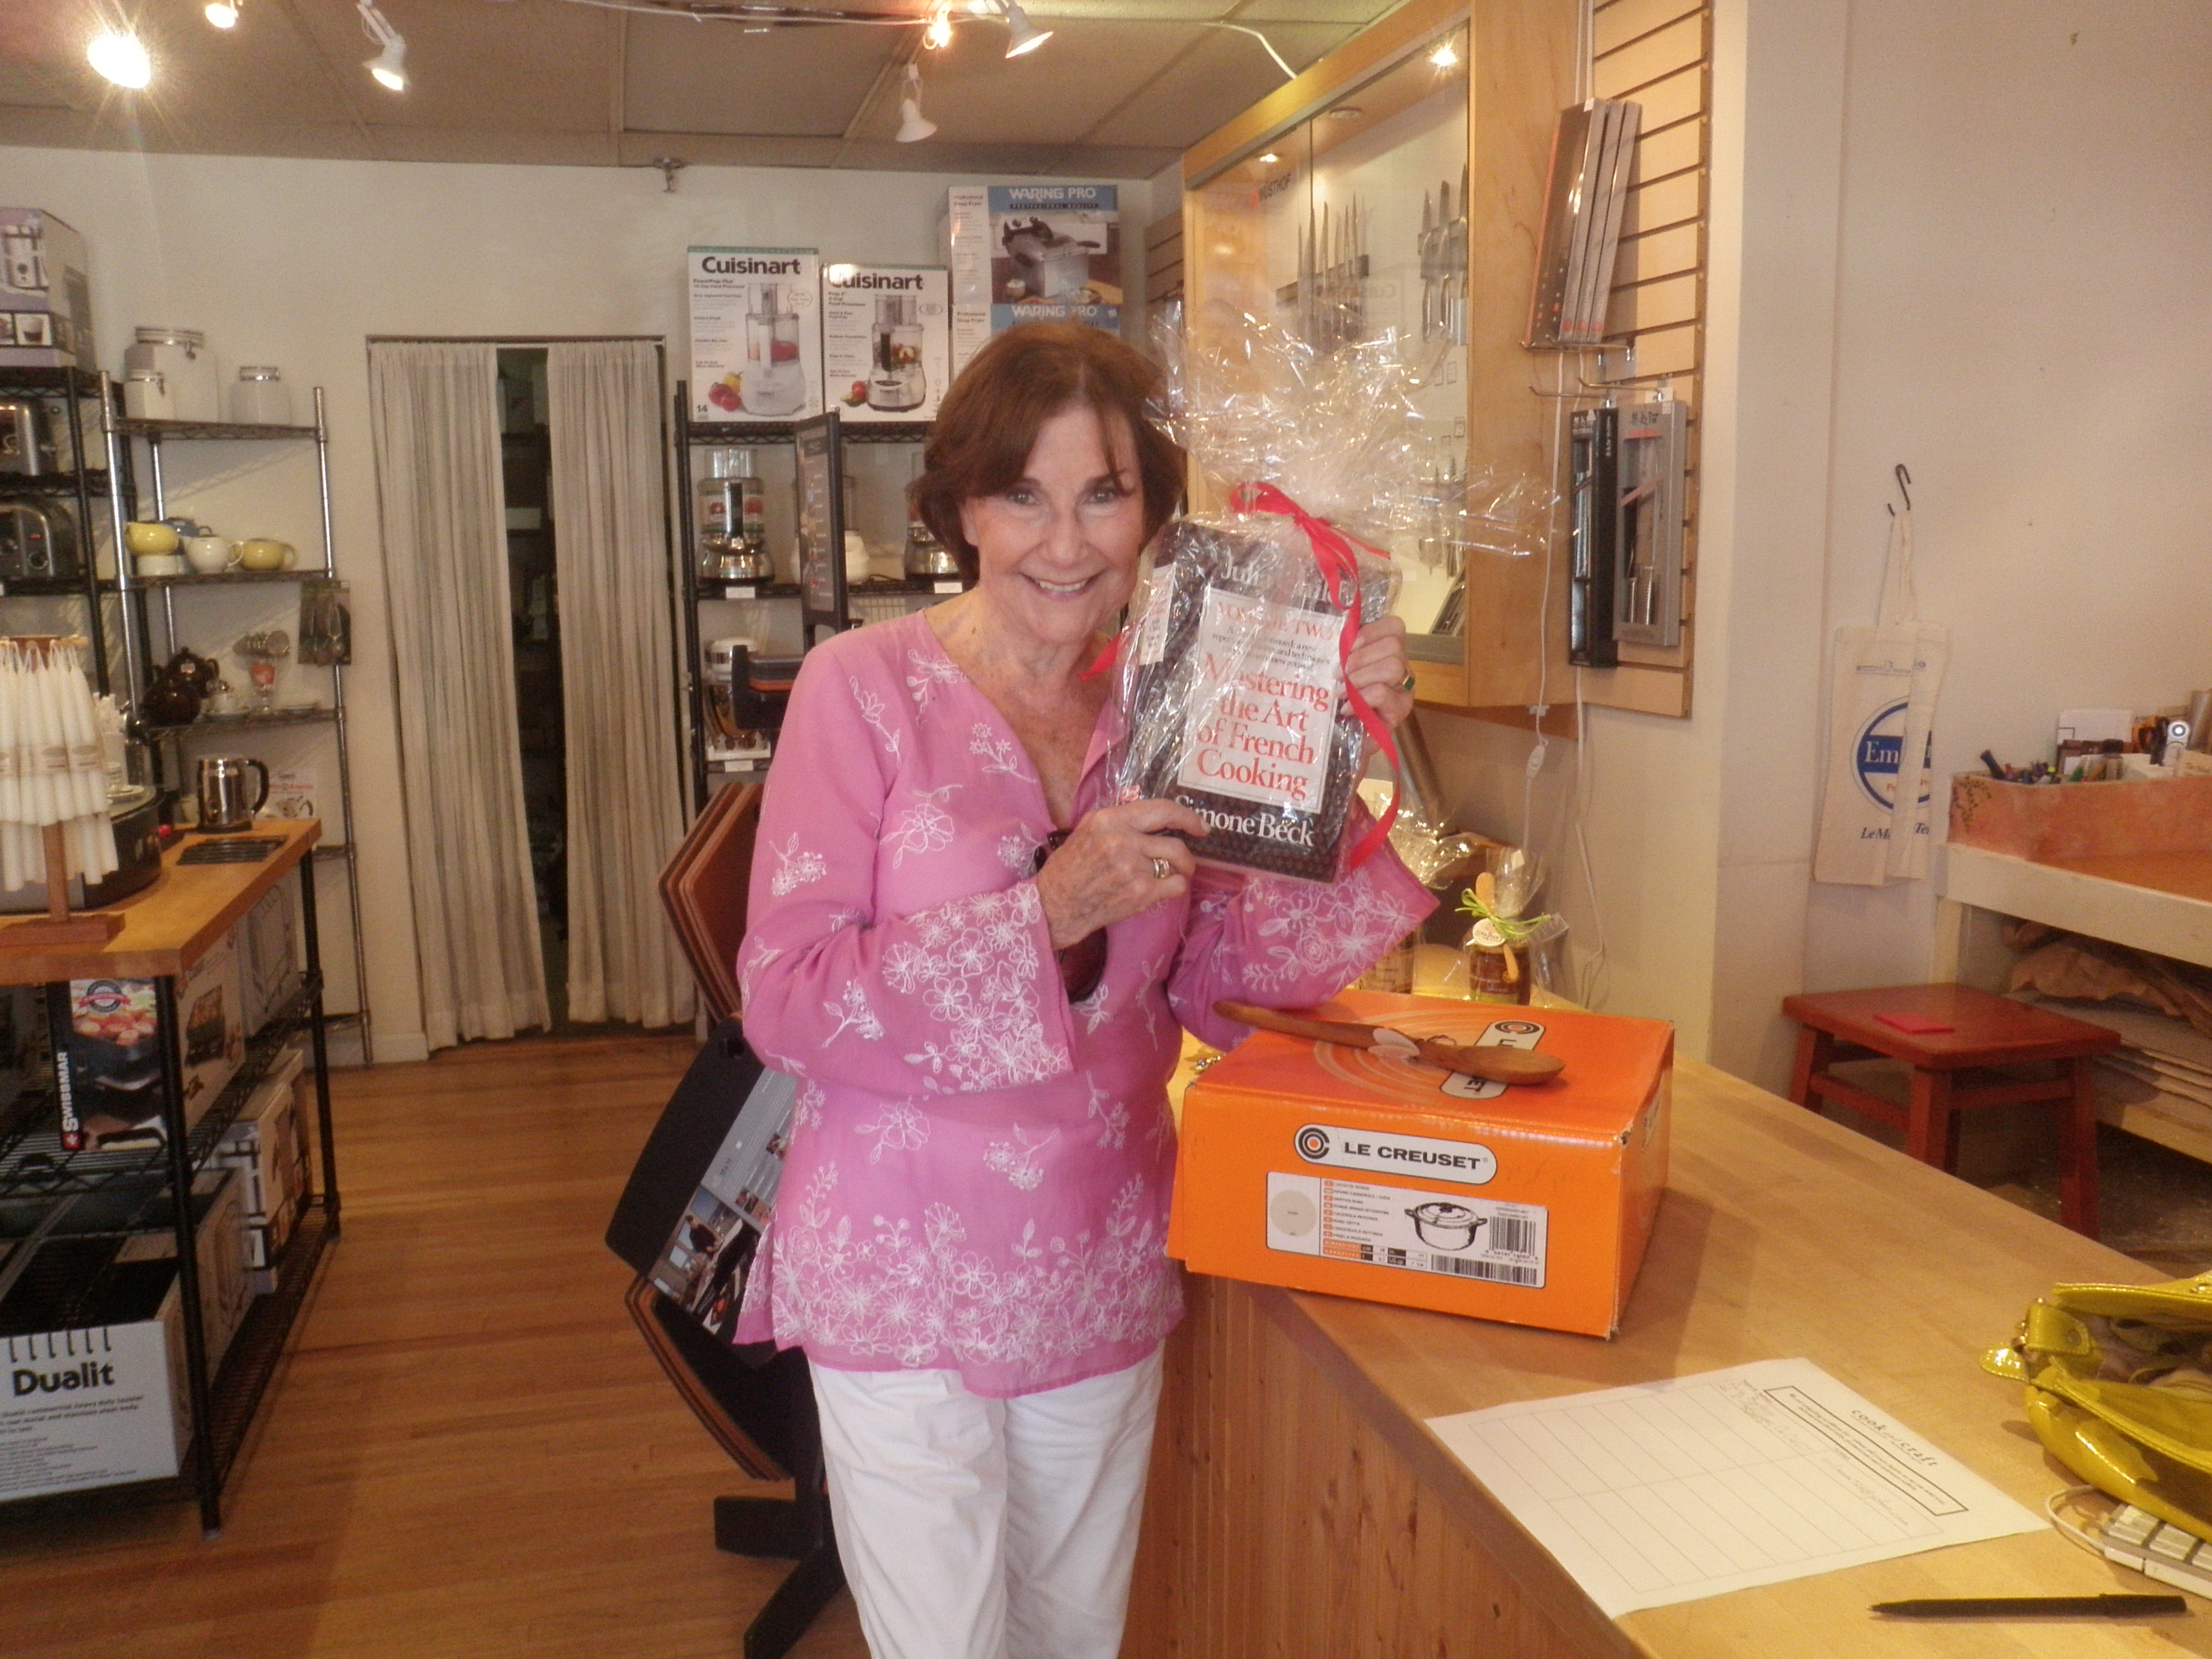 Lydia Auslander, the winner of our raffle prize worth over $300!